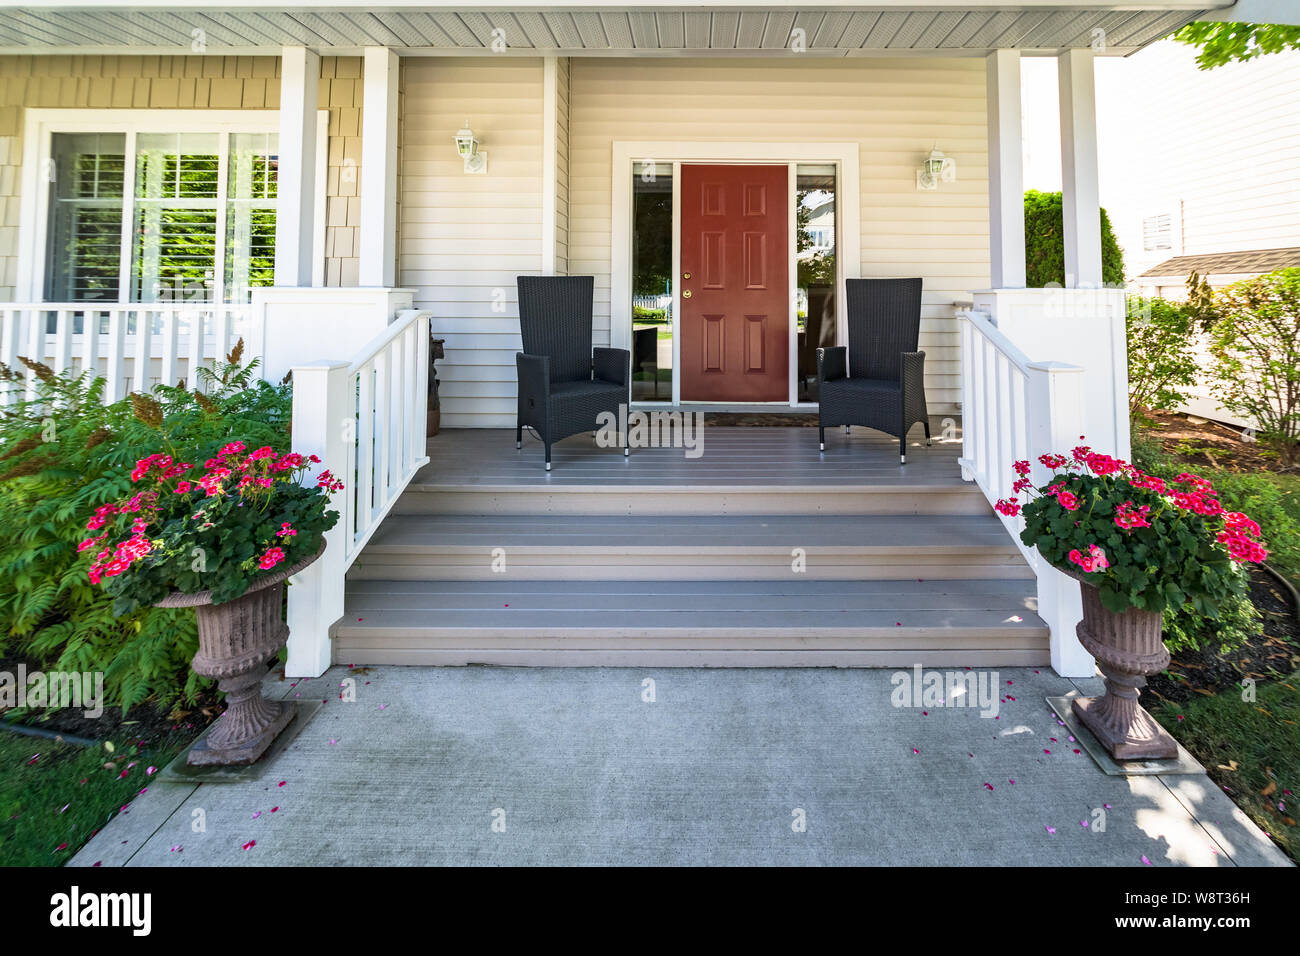 Door Steps And Concrete Pathway To Residential House Entrance Under The Porch Stock Photo Alamy